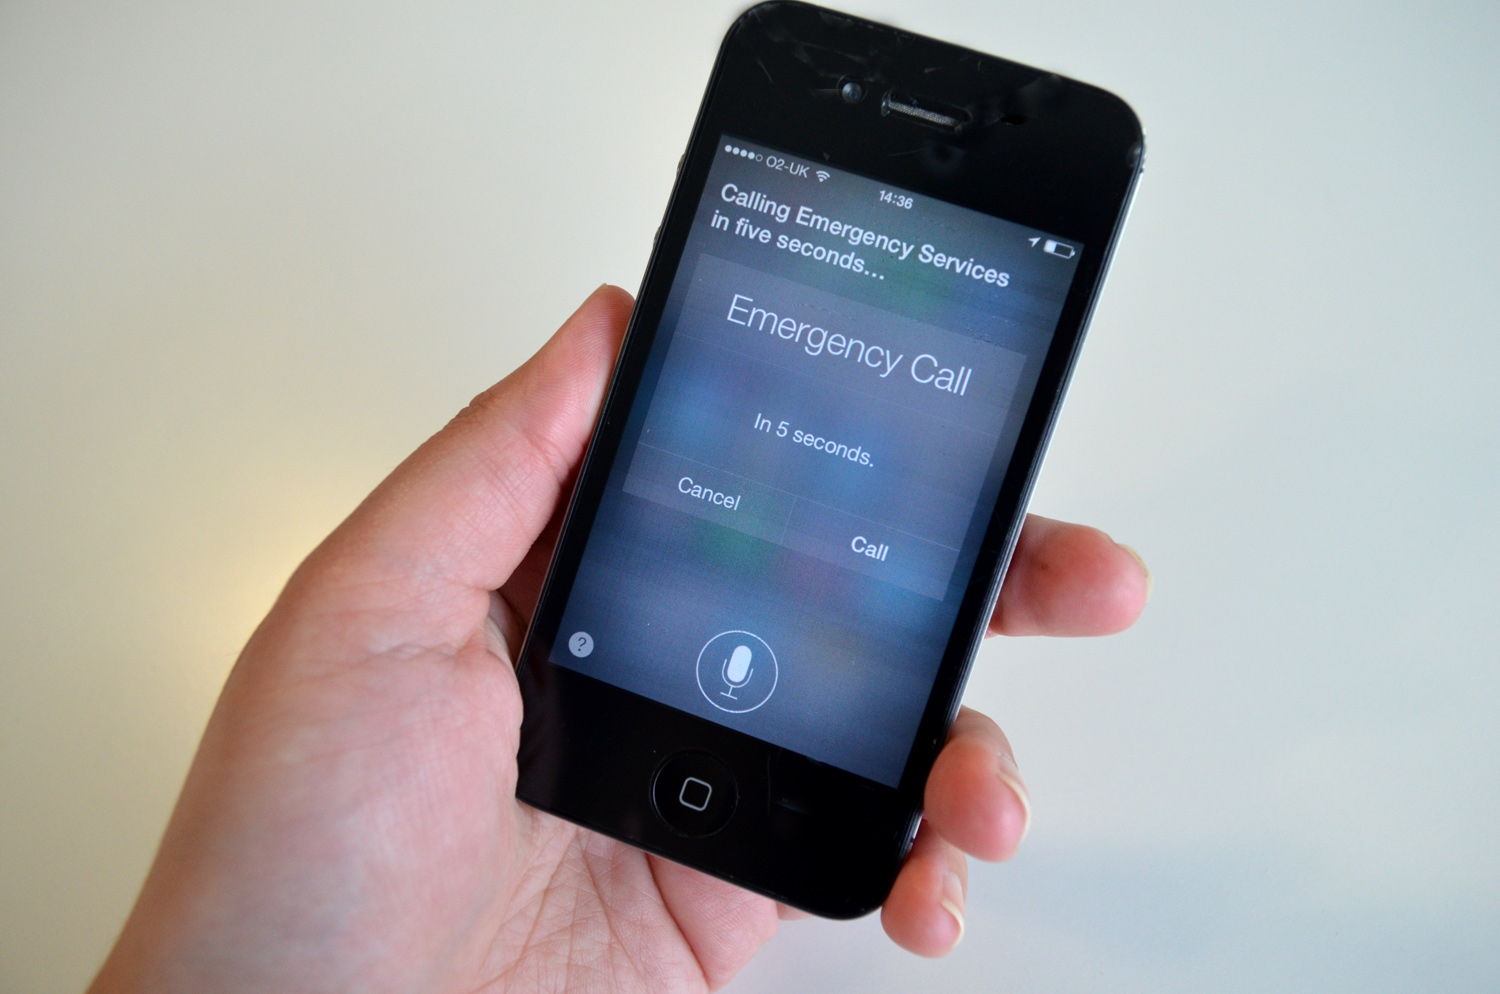 Siri enables you to call emergency services